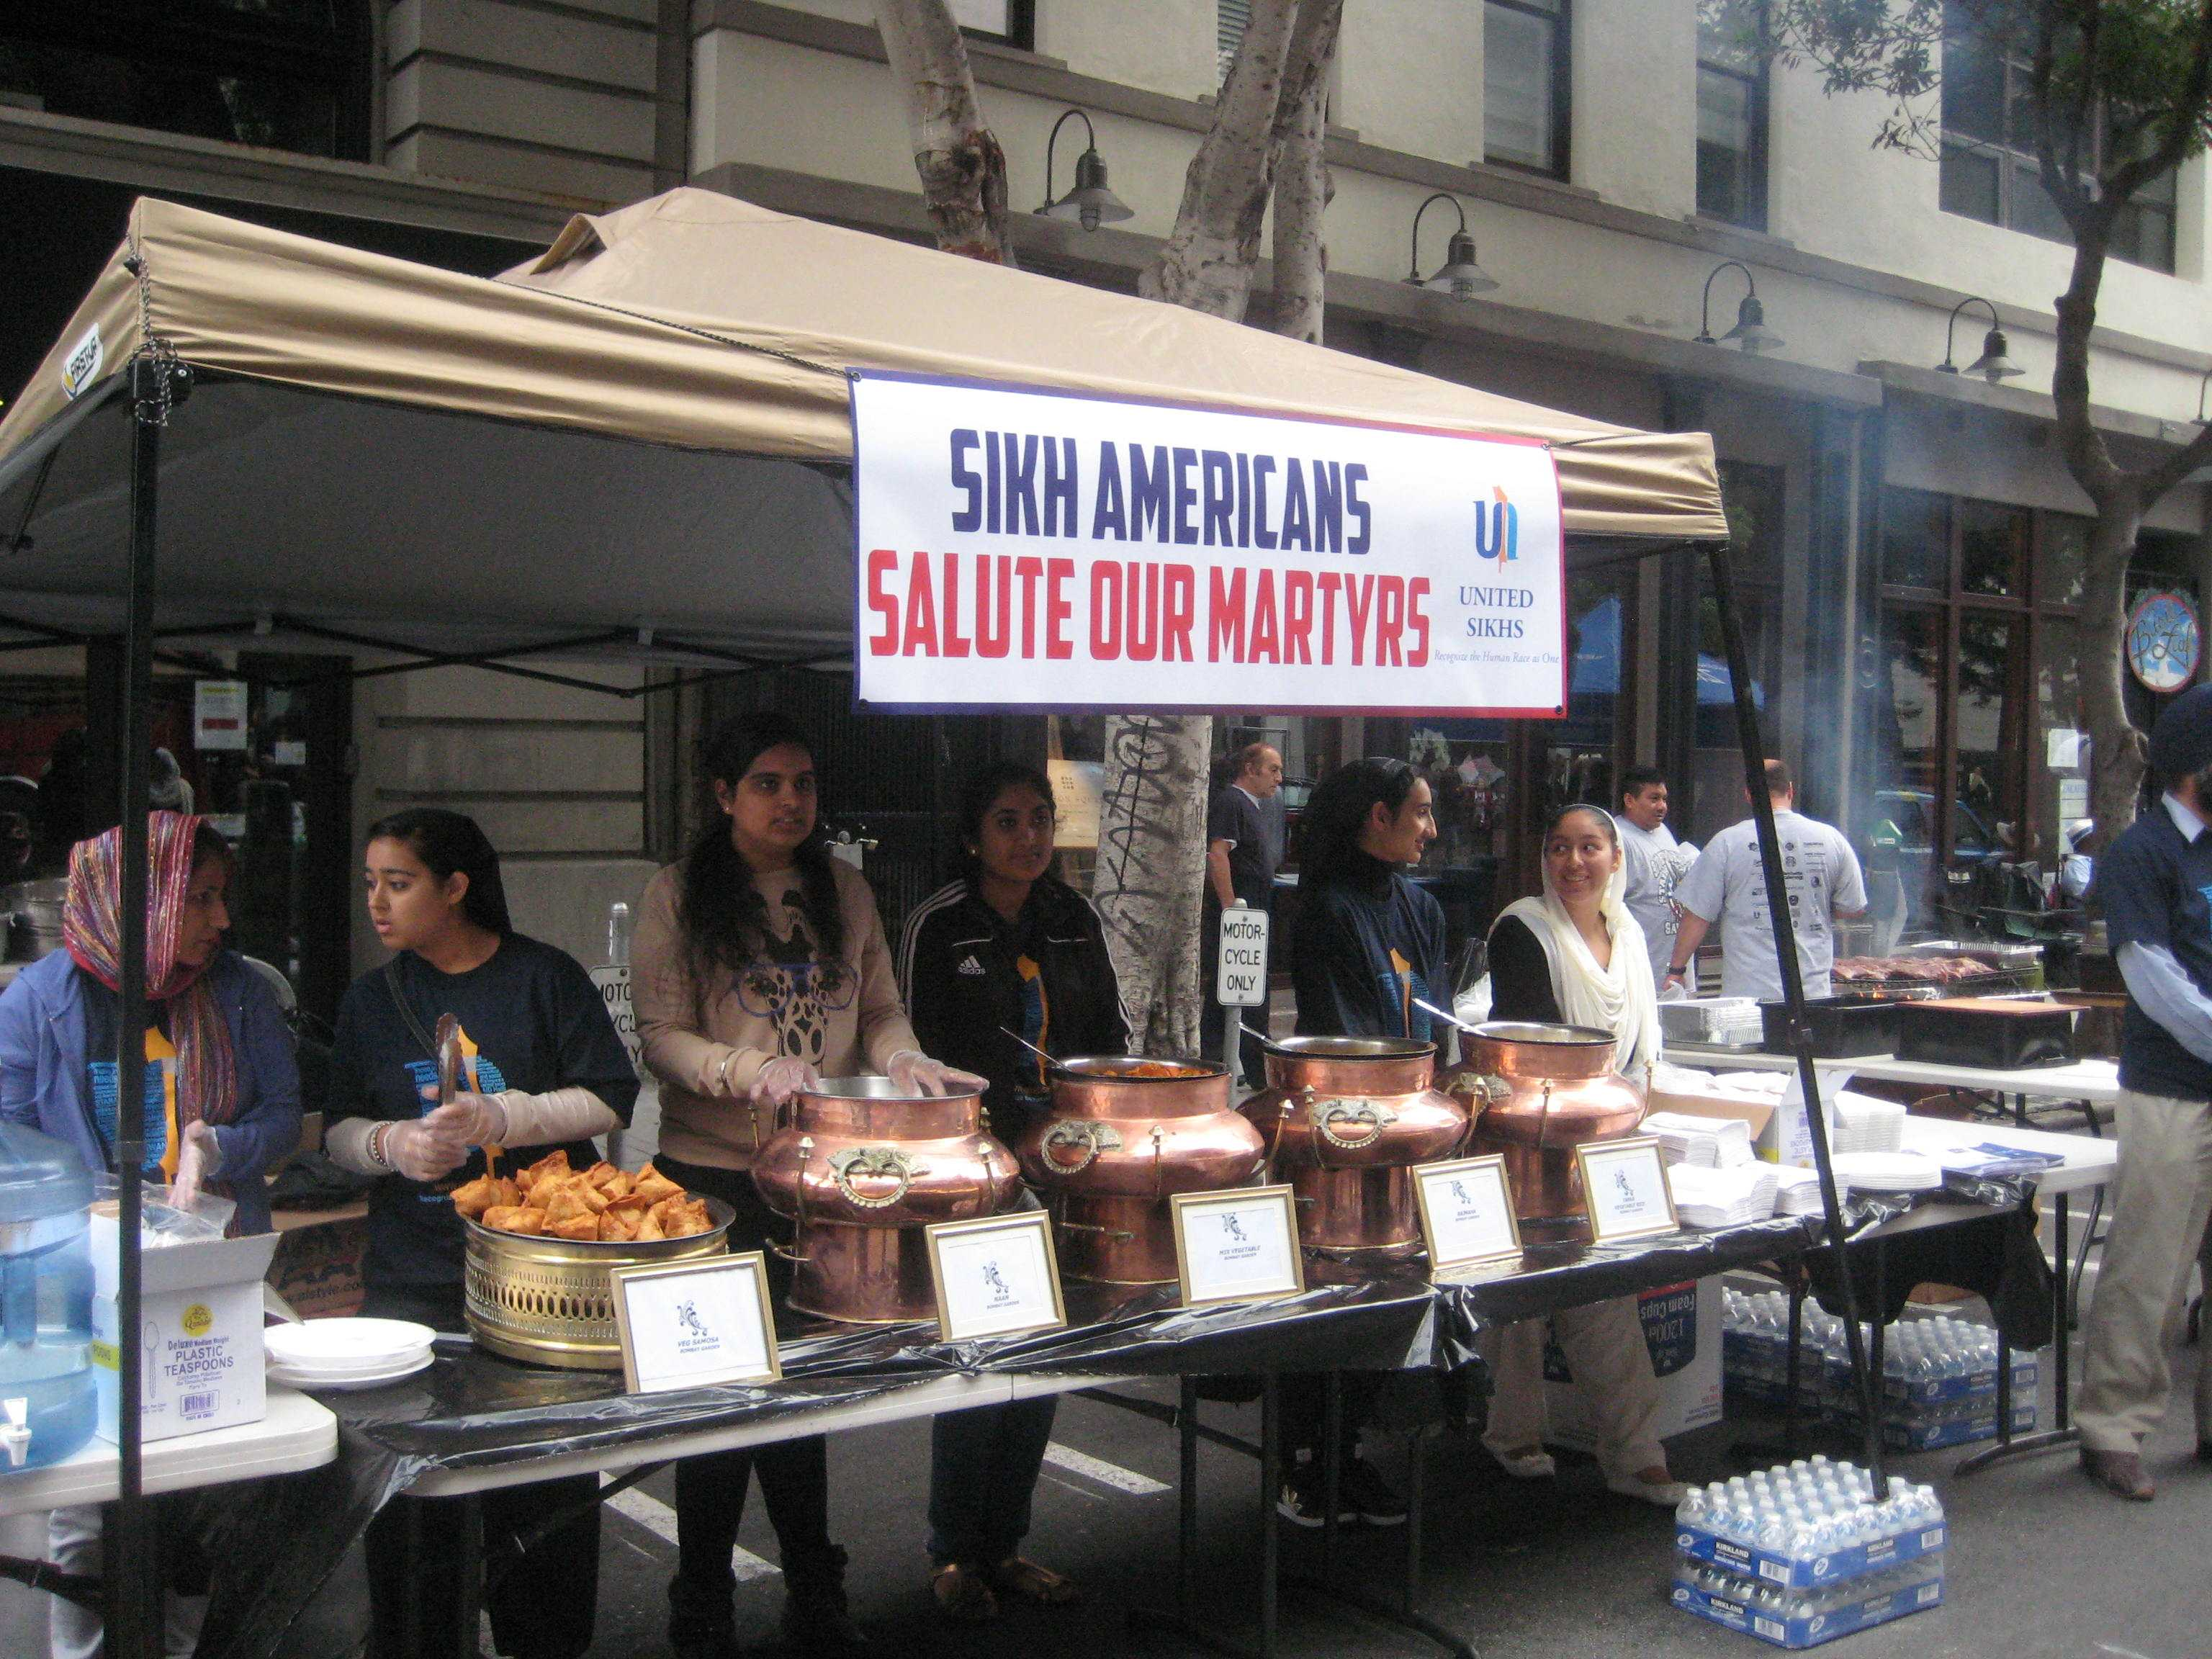 Sikhs from Fremont, Calif., serve food on Sunday, Sept. 11 at the Transamerica Pyramid to support The National Fallen Firefighters Foundation.